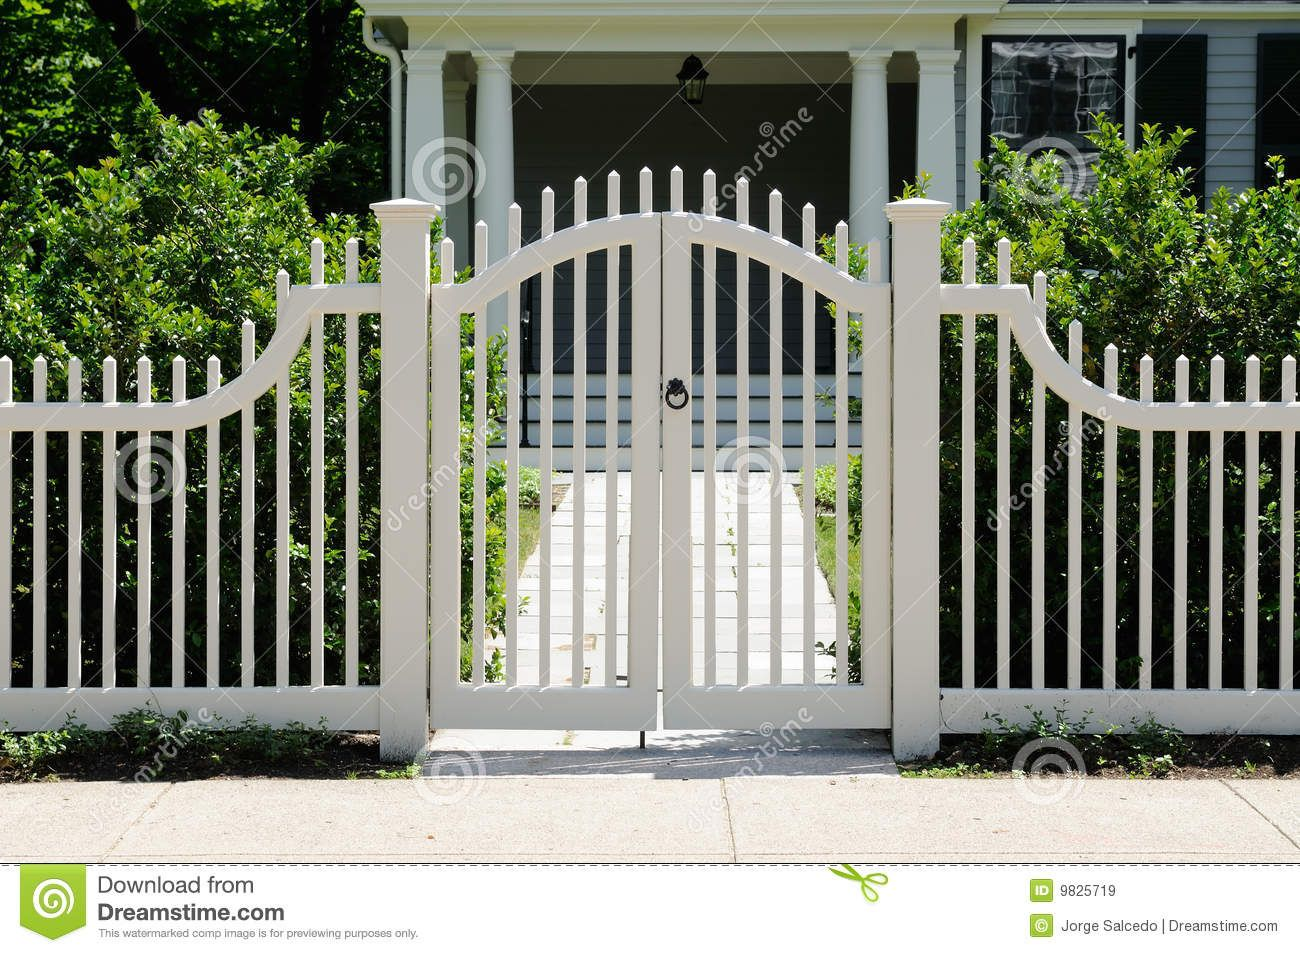 1000+ images about for my fence on Pinterest - ^